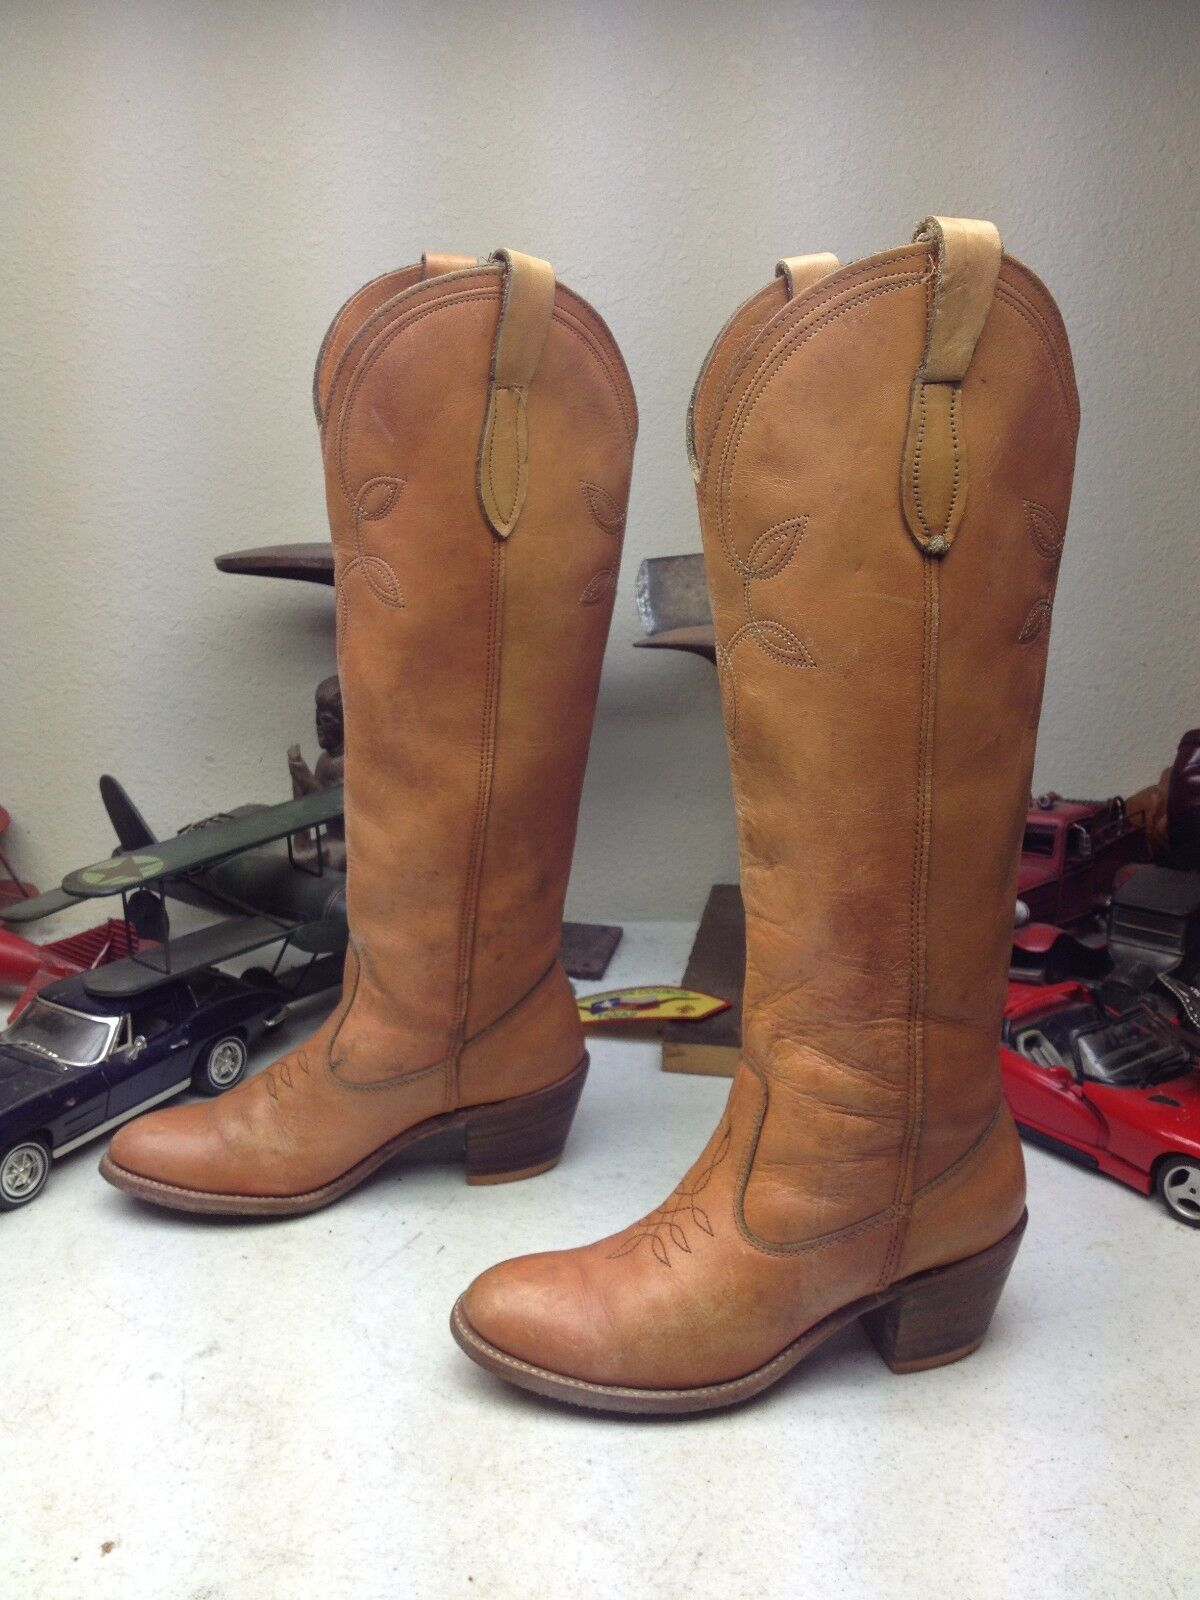 VINTAGE DISTRESSED DINGO ACME USA BROWN LEATHER KNEE HIGH FASHION Boot SIZE 6M